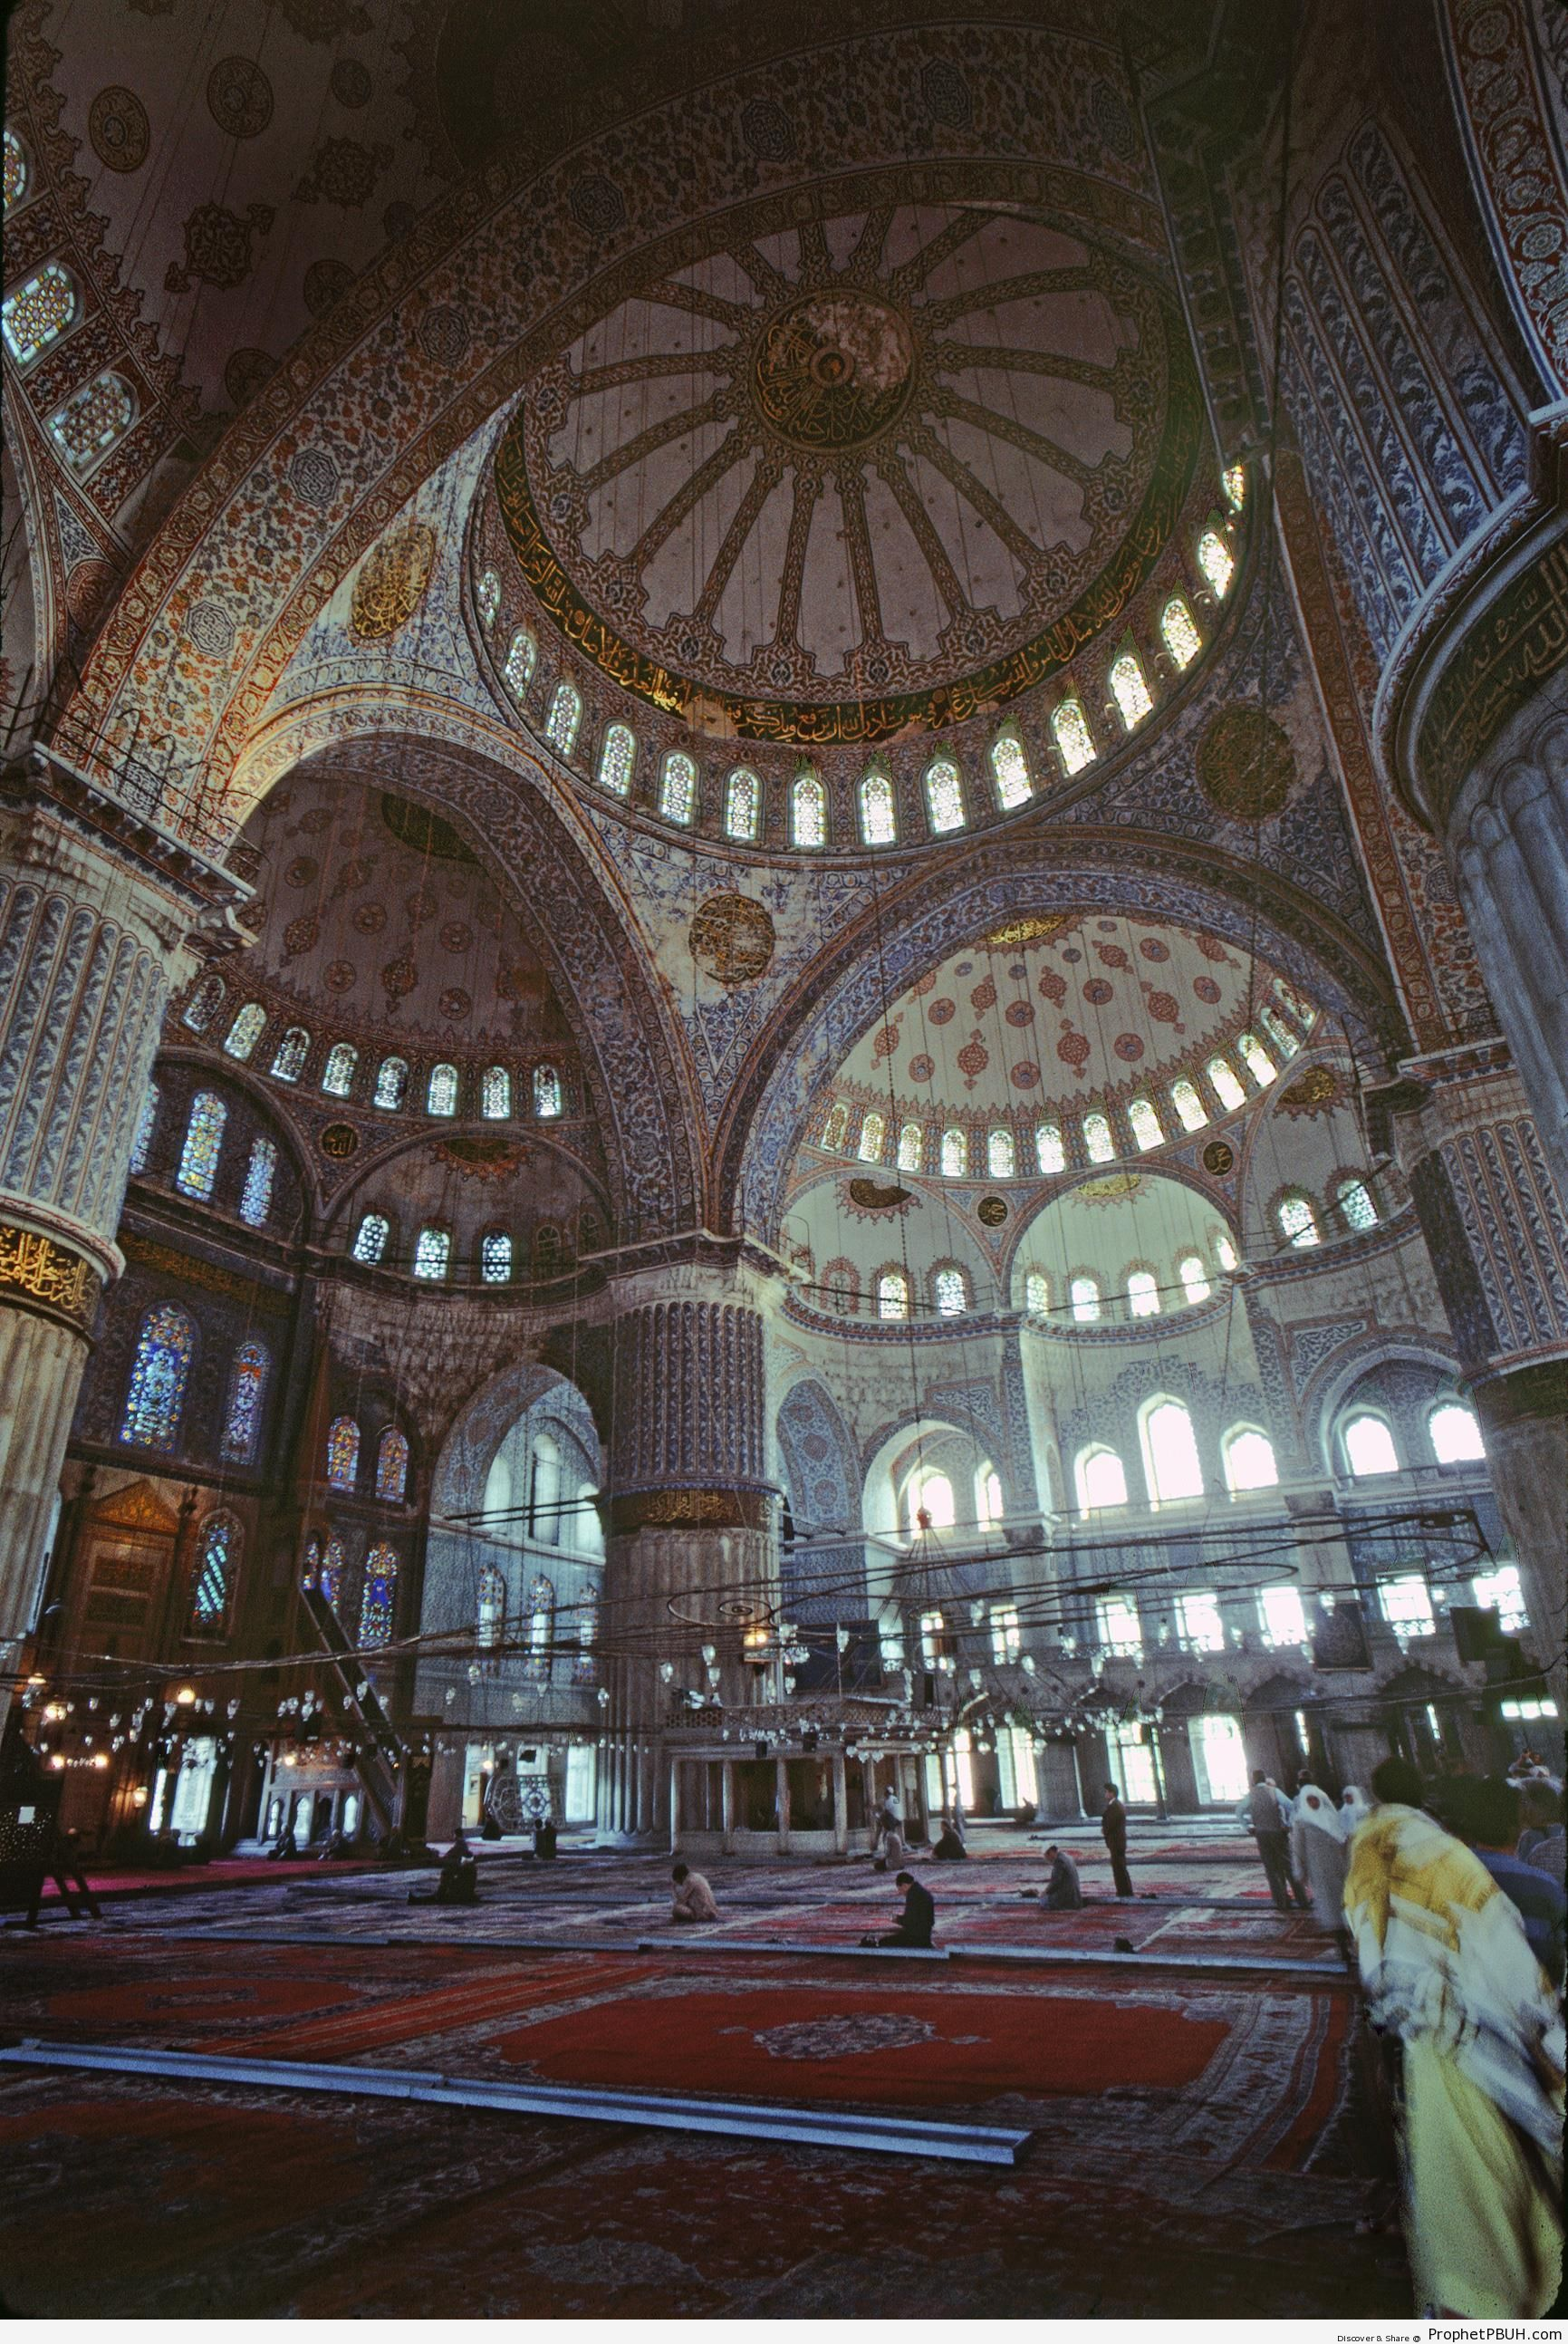 Interior of Sultan Ahmed Mosque (Blue Mosque) in Istanbul, Turkey - Islamic Architecture -Picture